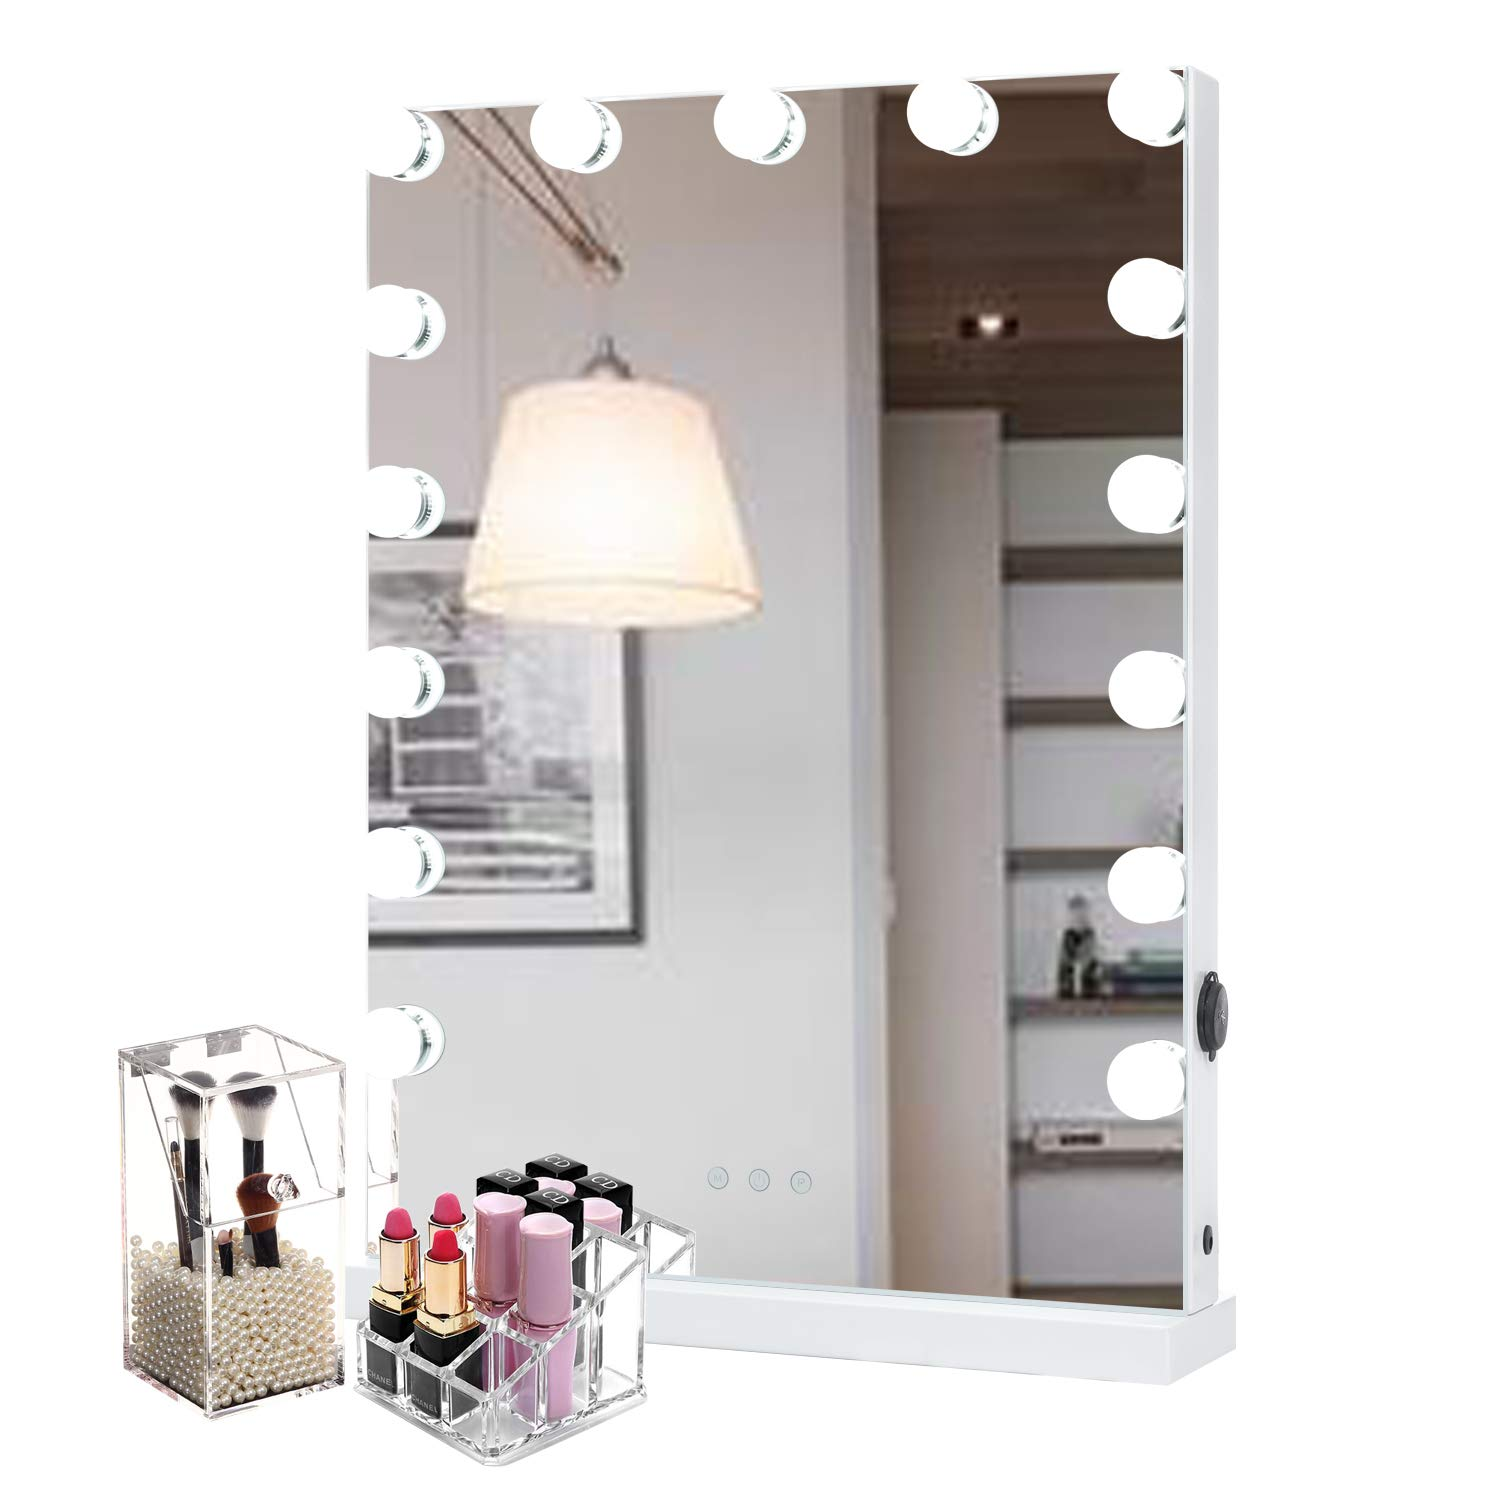 WAYKING Makeup Mirror with lights, Hollywood Vanity Mirror with Touch Screen Dimmer, USB Charging Port, 3 Color Lighting Modes, White L18.9 X H22.8 inch